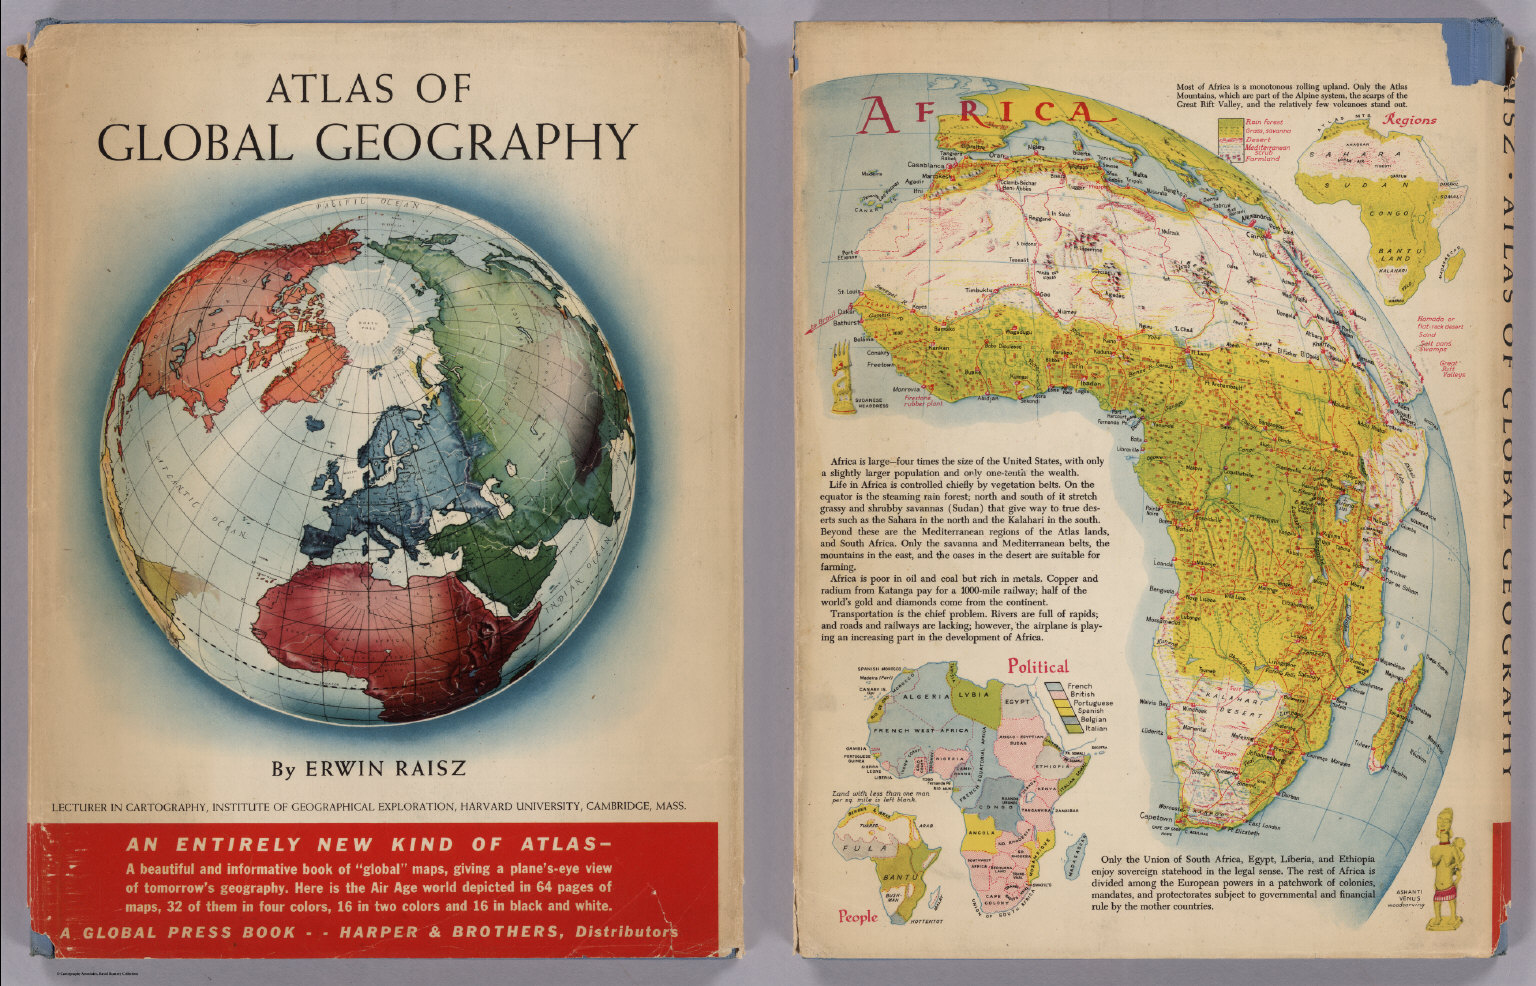 Covers atlas of global geography david rumsey historical map covers atlas of global geography gumiabroncs Image collections